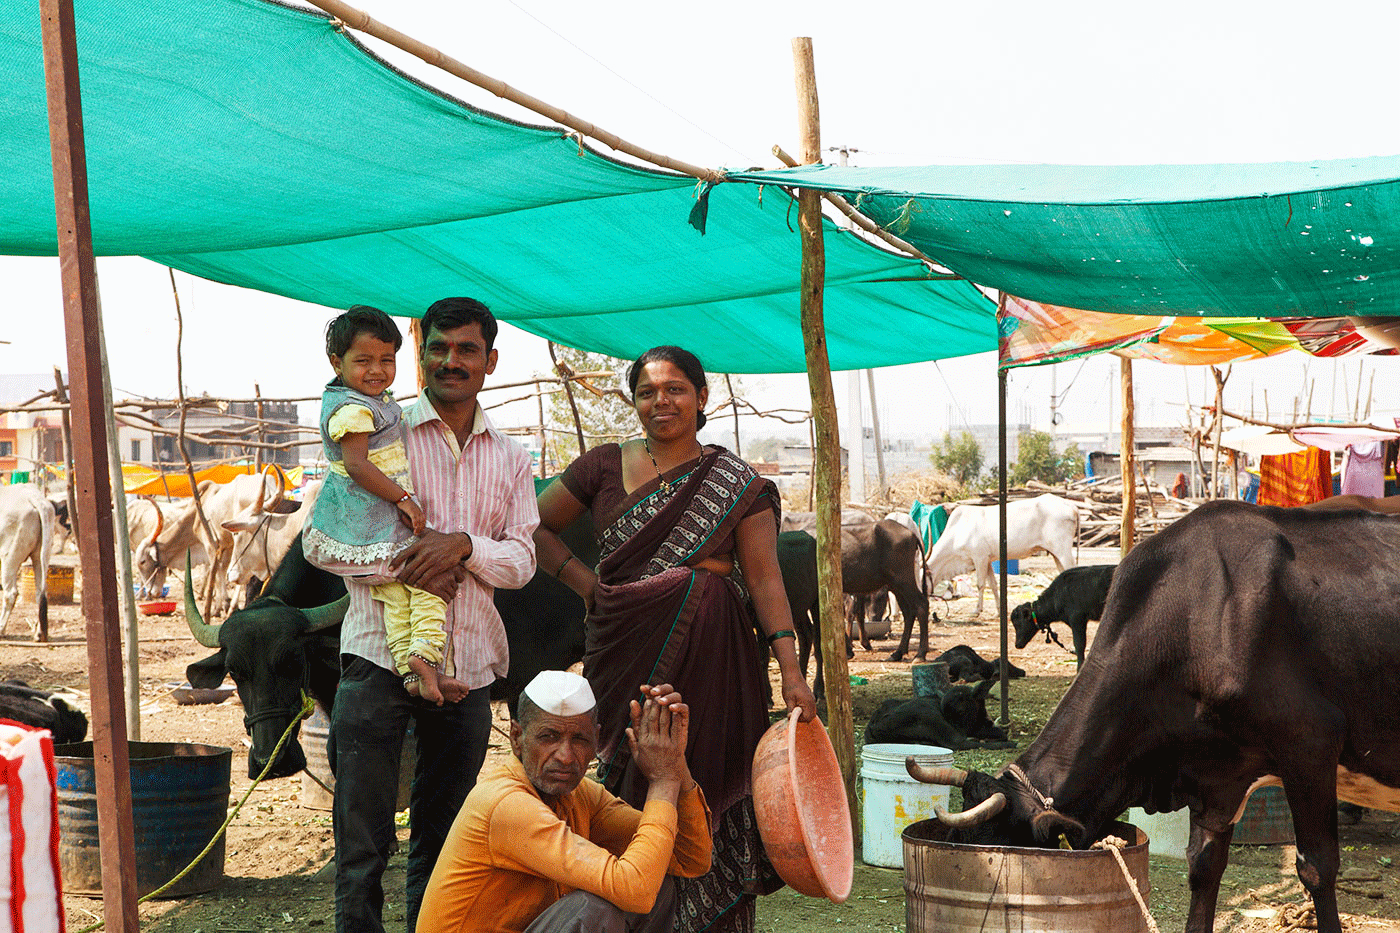 Sarika and Anil Sawant with their family at the cattle camp